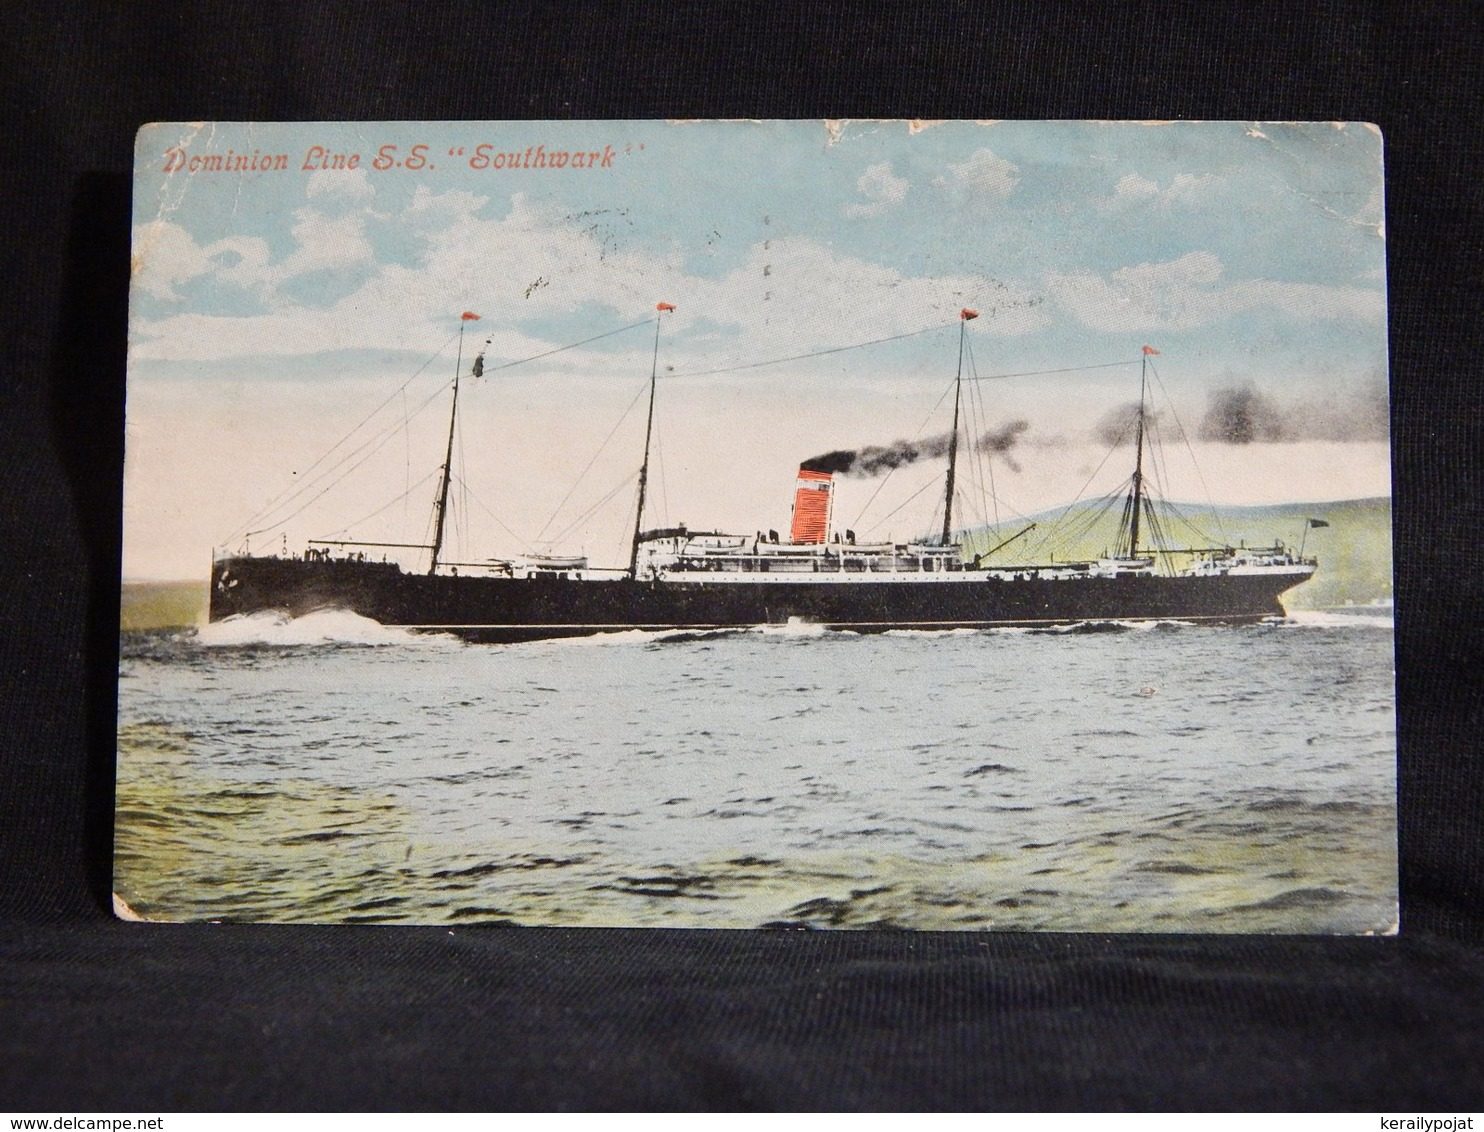 Steamer S.S. Southwark -07__(22175) - Paquebote